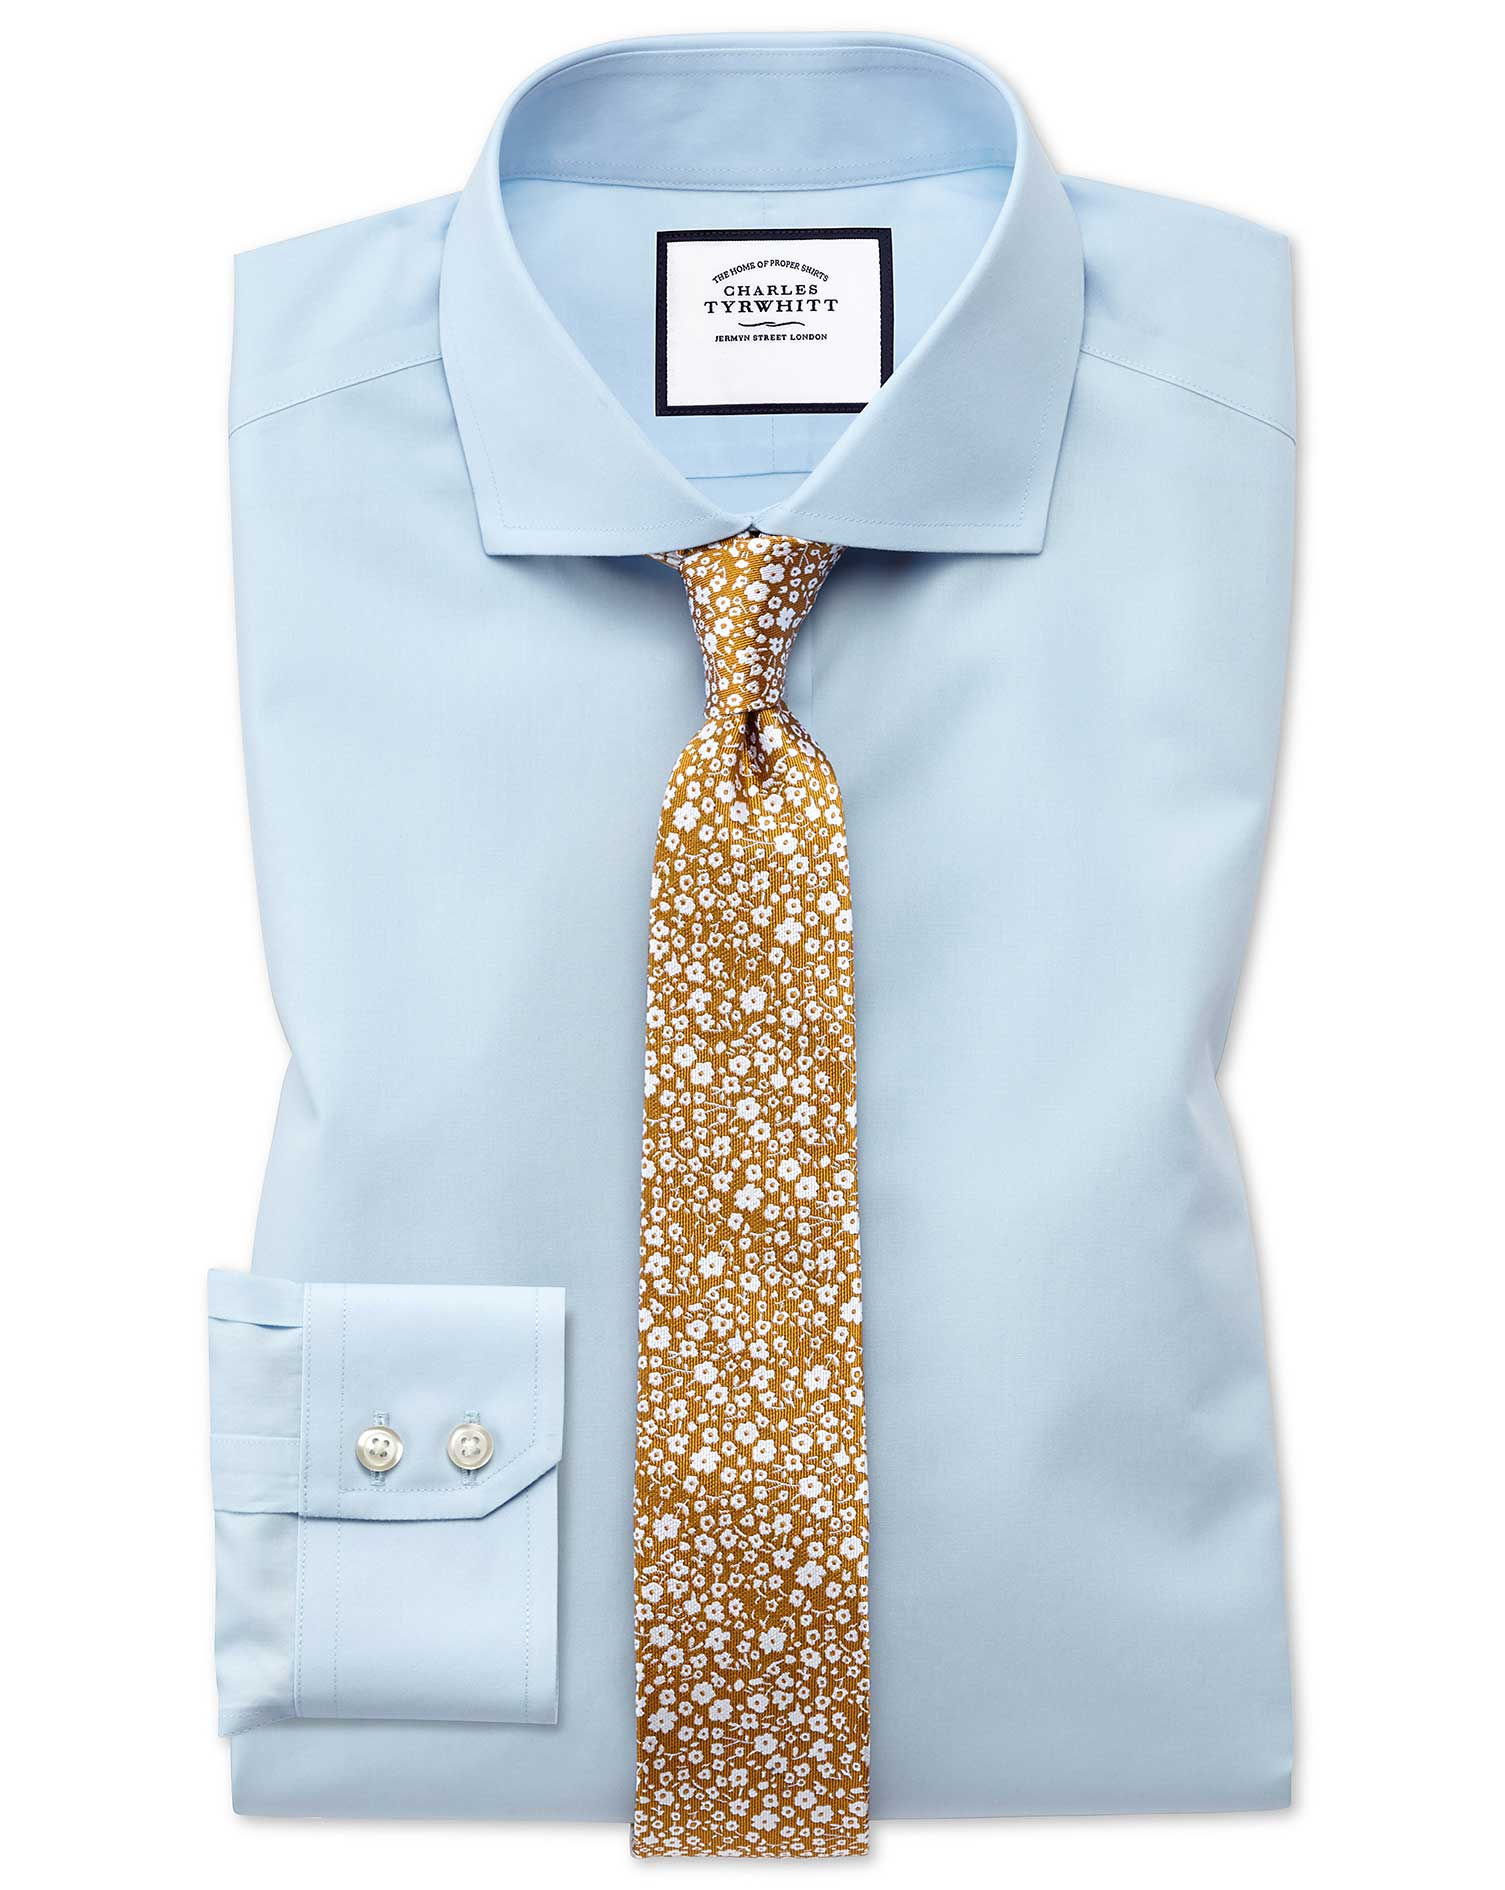 Classic Fit Cutaway Non-Iron Natural Cool Sky Blue Cotton Formal Shirt Single Cuff Size 16/33 by Cha